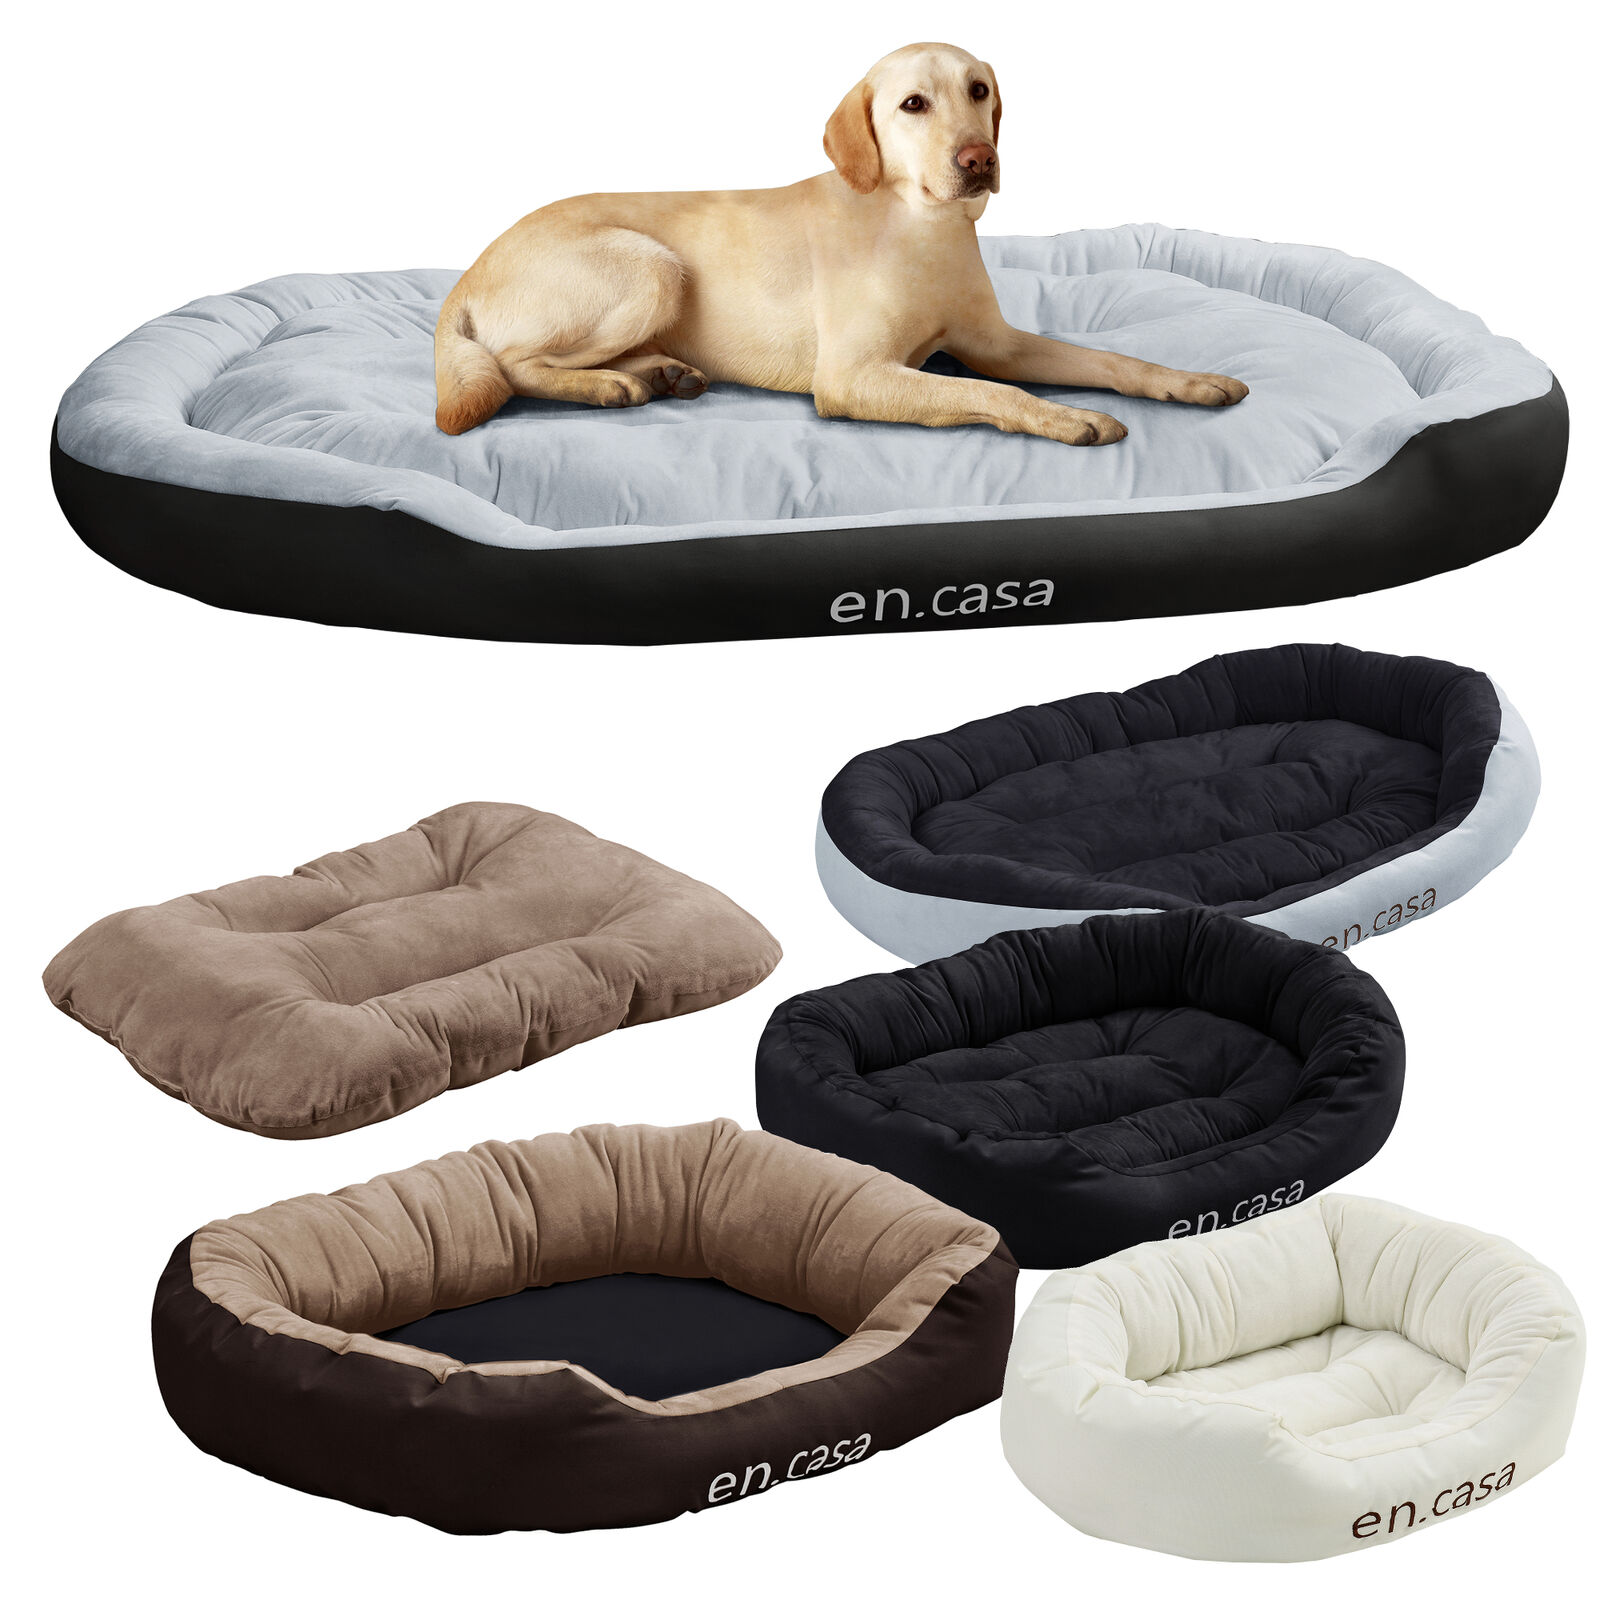 en casa hundebett katzen bett kissen tier korb hundekissen hundesofa liege eur 16 99. Black Bedroom Furniture Sets. Home Design Ideas